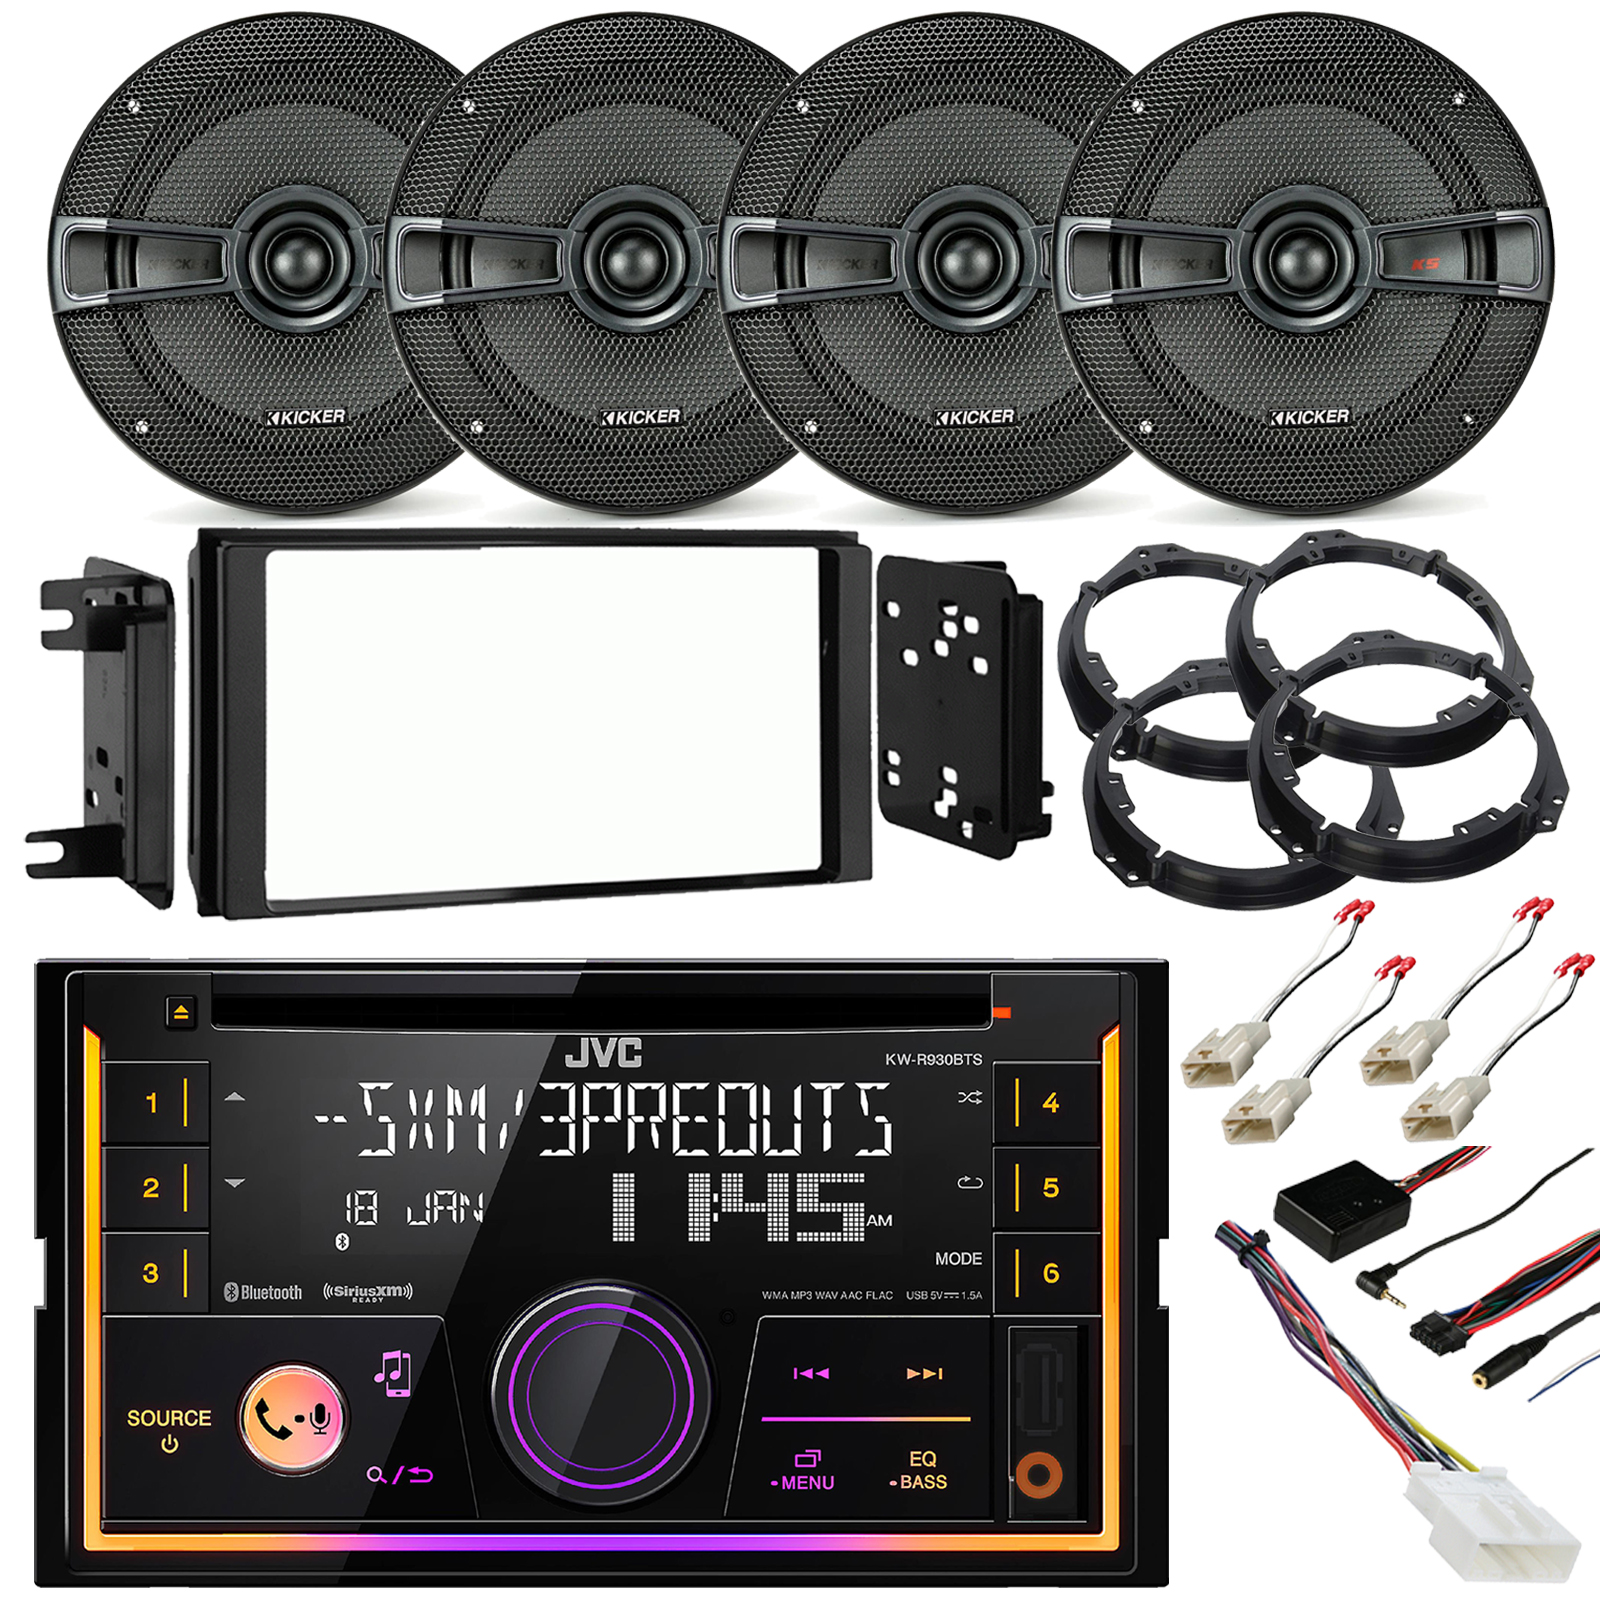 Premium Car Stereo Install Charcoal Gray Dash Kit Wire ... on dodge sprinter radio wiring harness, ford ranger radio wiring harness, chevy silverado radio wiring harness, cadillac escalade radio wiring harness, toyota tundra radio wiring harness, pontiac g6 radio wiring harness, ford f150 radio wiring harness, jeep wrangler radio wiring harness,